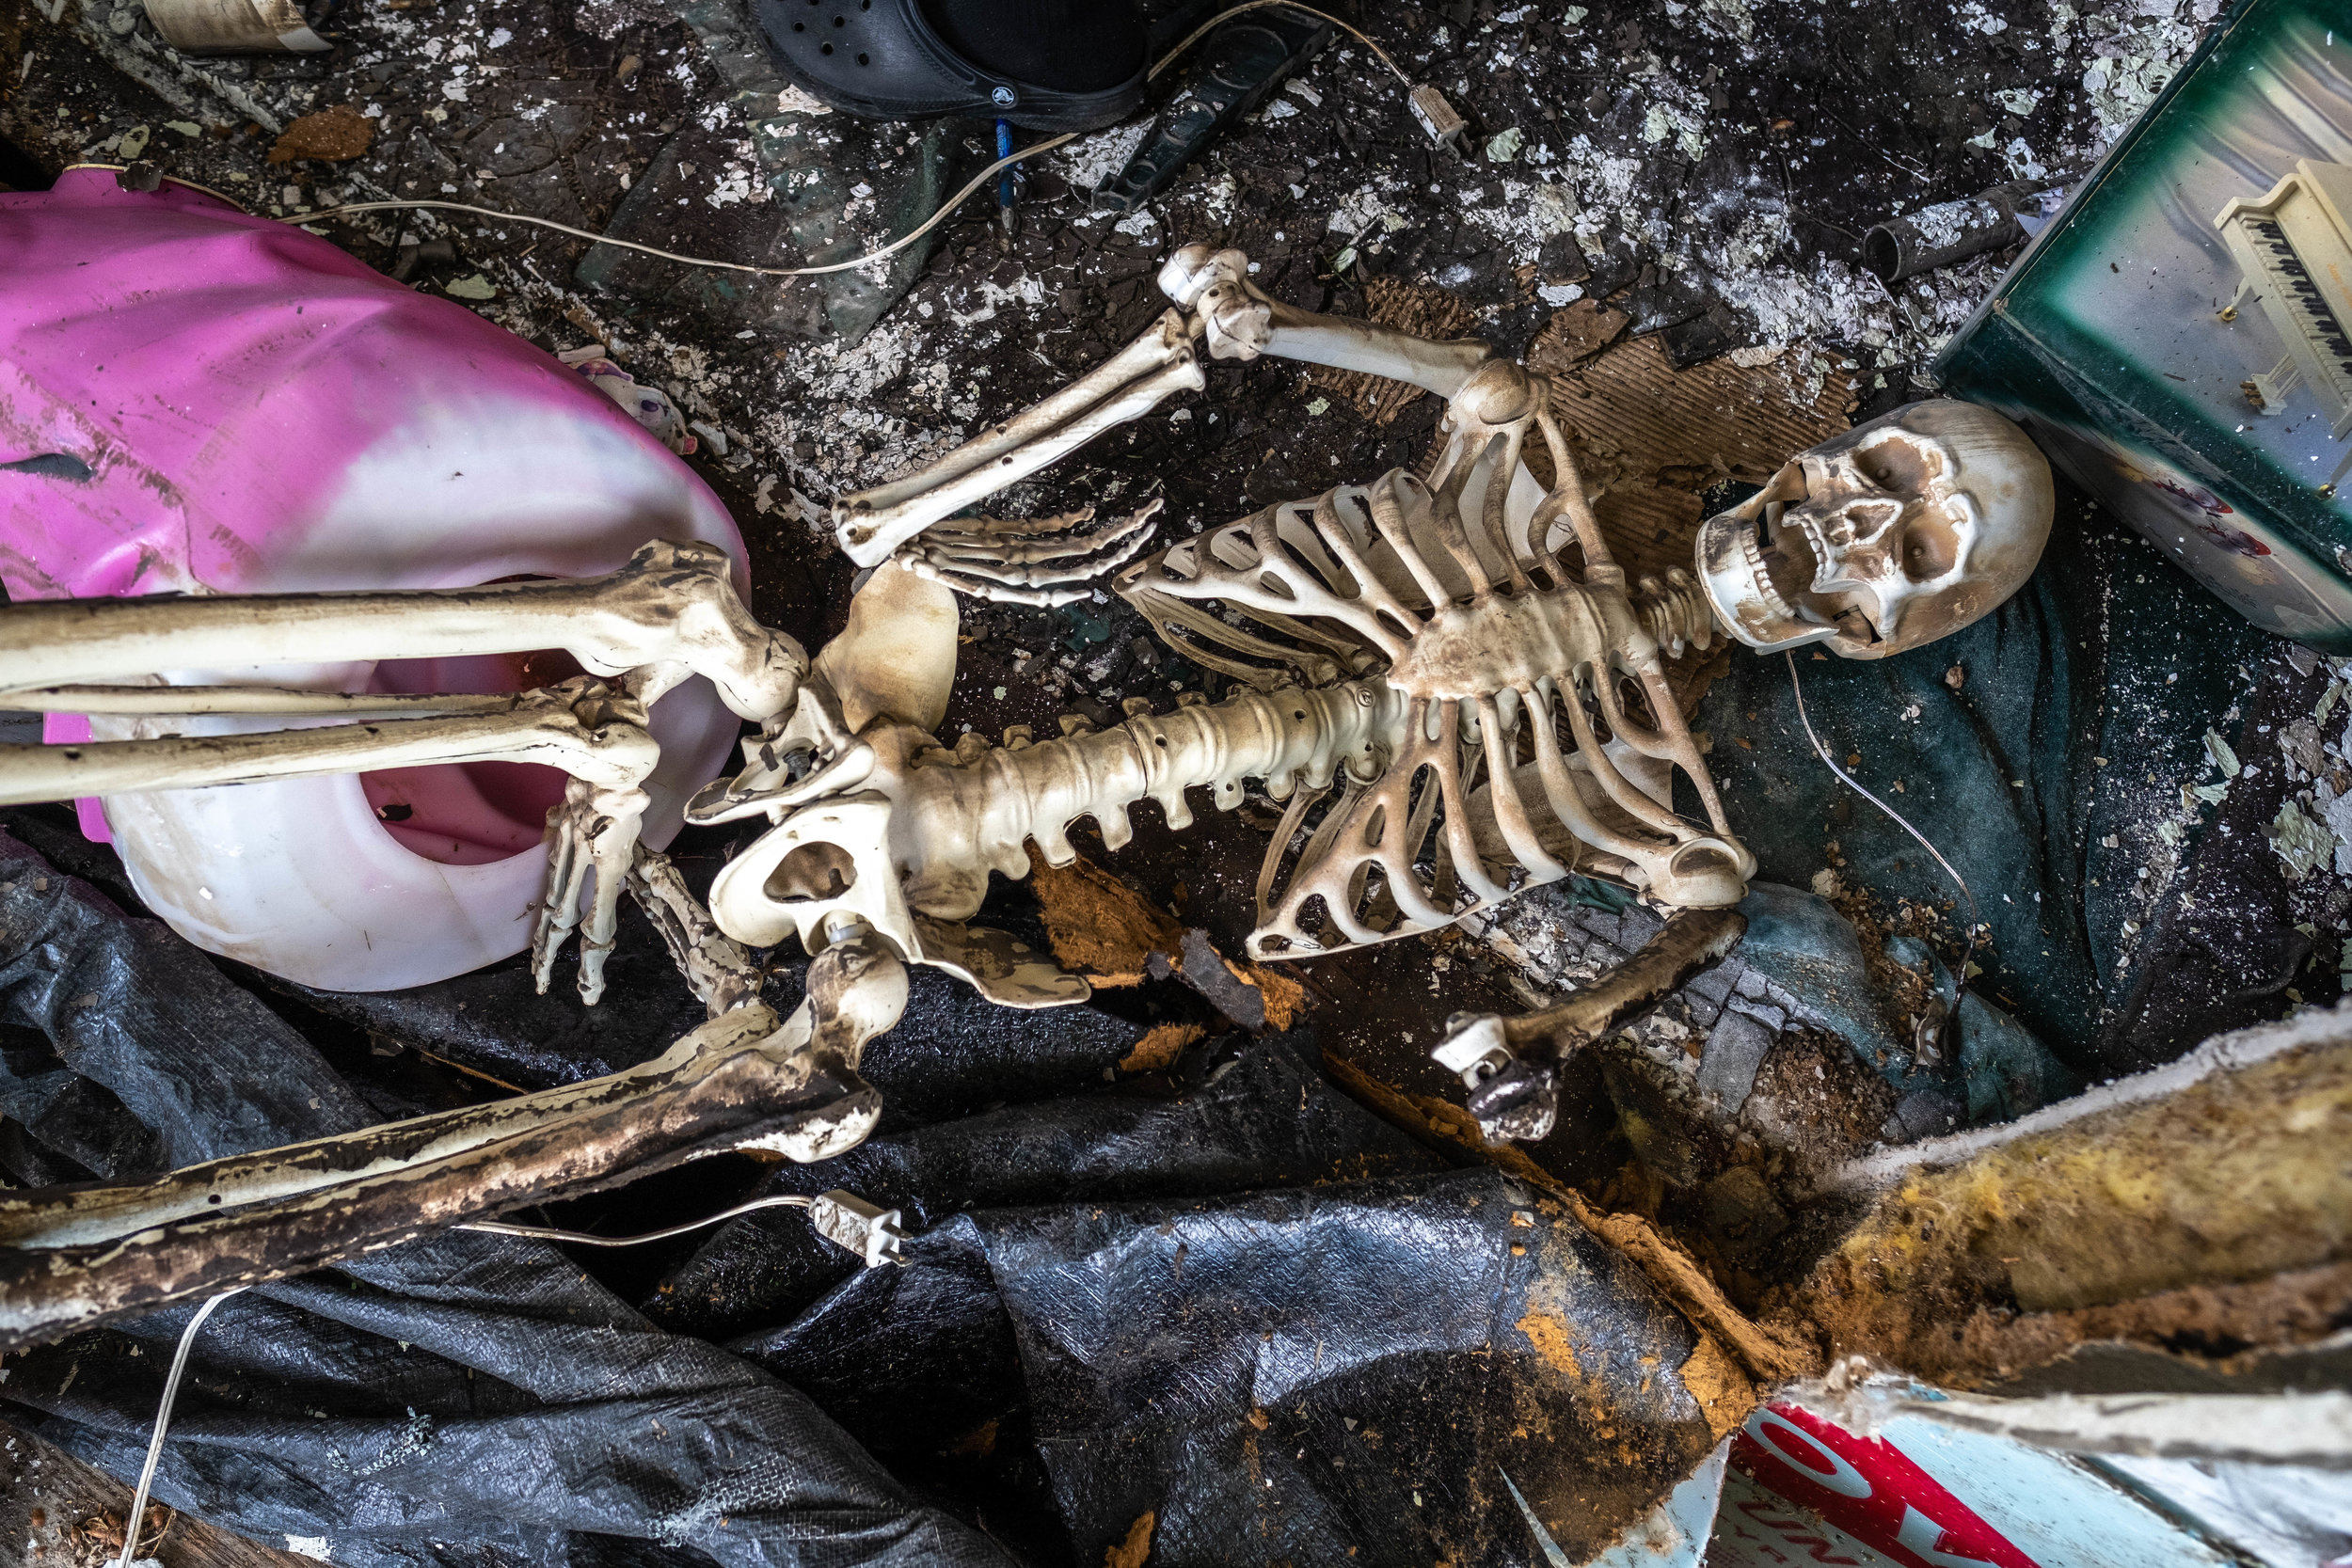 A Halloween decoration is unearthed. Ironically, earlier this week, Dean and his brother discovered the actual remains of a human skeleton when they were fising on the Missouri River. They reported the discovery to the local authorities and wondered if it was a victim of the flood.